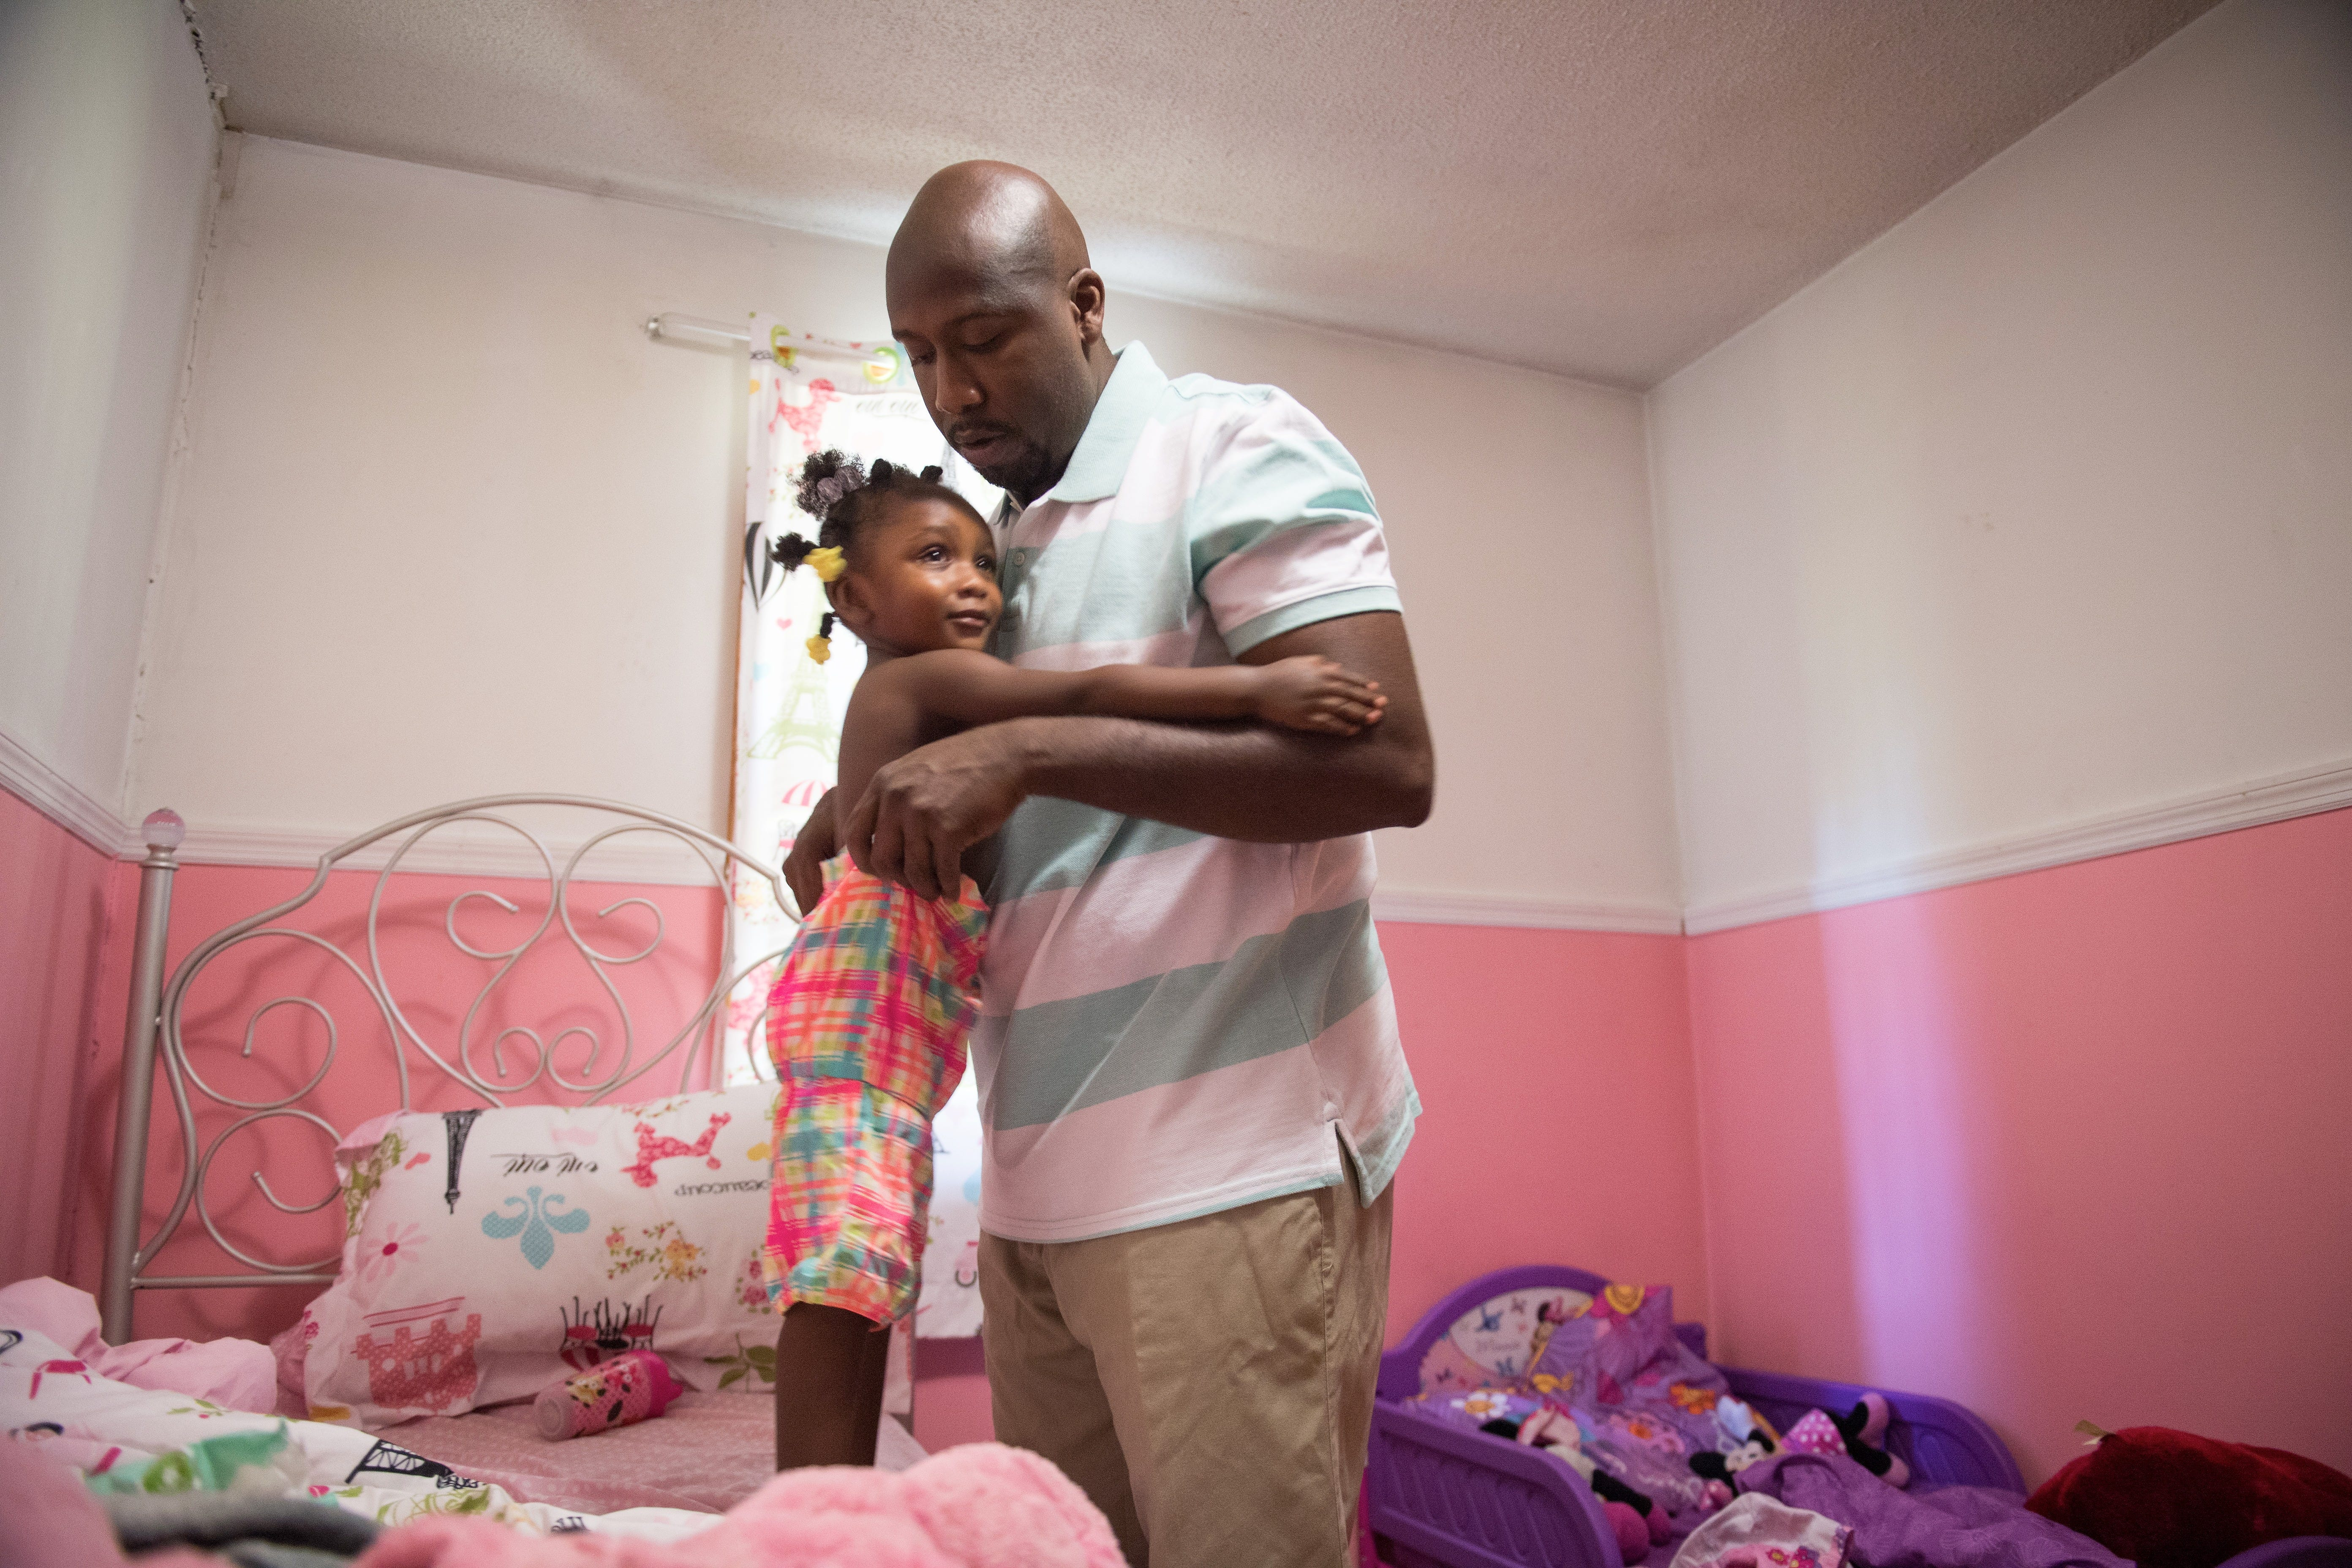 Marco Mention dresses his daughter Serenity at their home in Nesmith, South Carolina. He balances work as a school bus driver with the demands of raising three daughters alone.